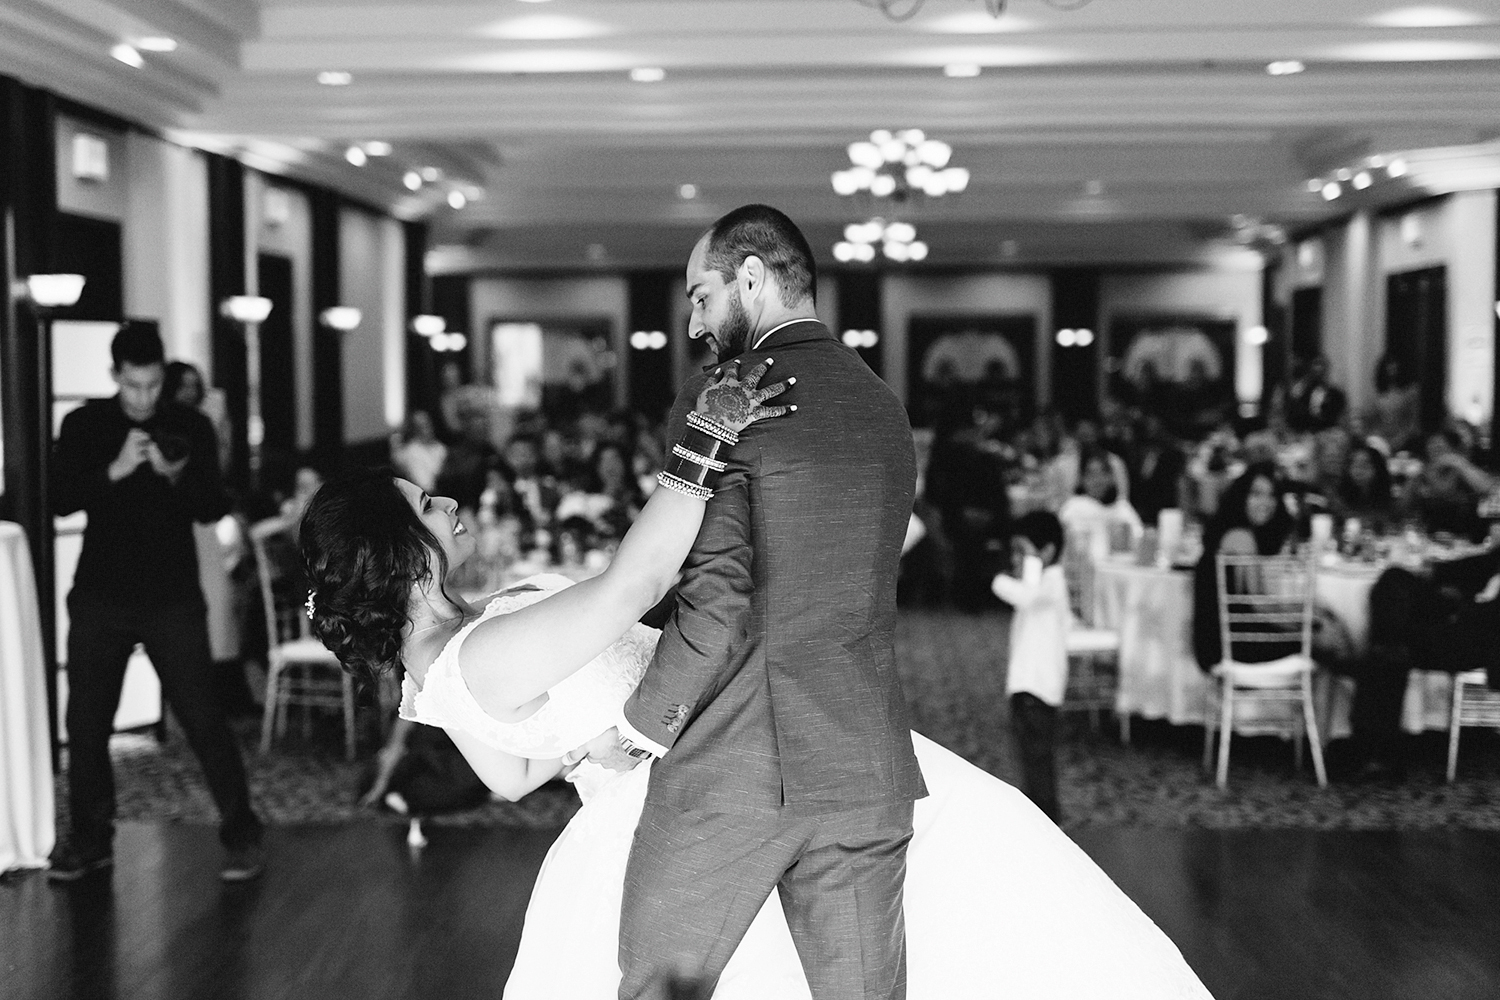 Toronto's-Best-Film-Wedding-Photography-3B-Photography-Multicultural-wedding-day-two-Hamilton-Grimsby-Toronto-Wedding-documentary-photojournalistic-photojournalism-prices-reception-first-fdance.jpg